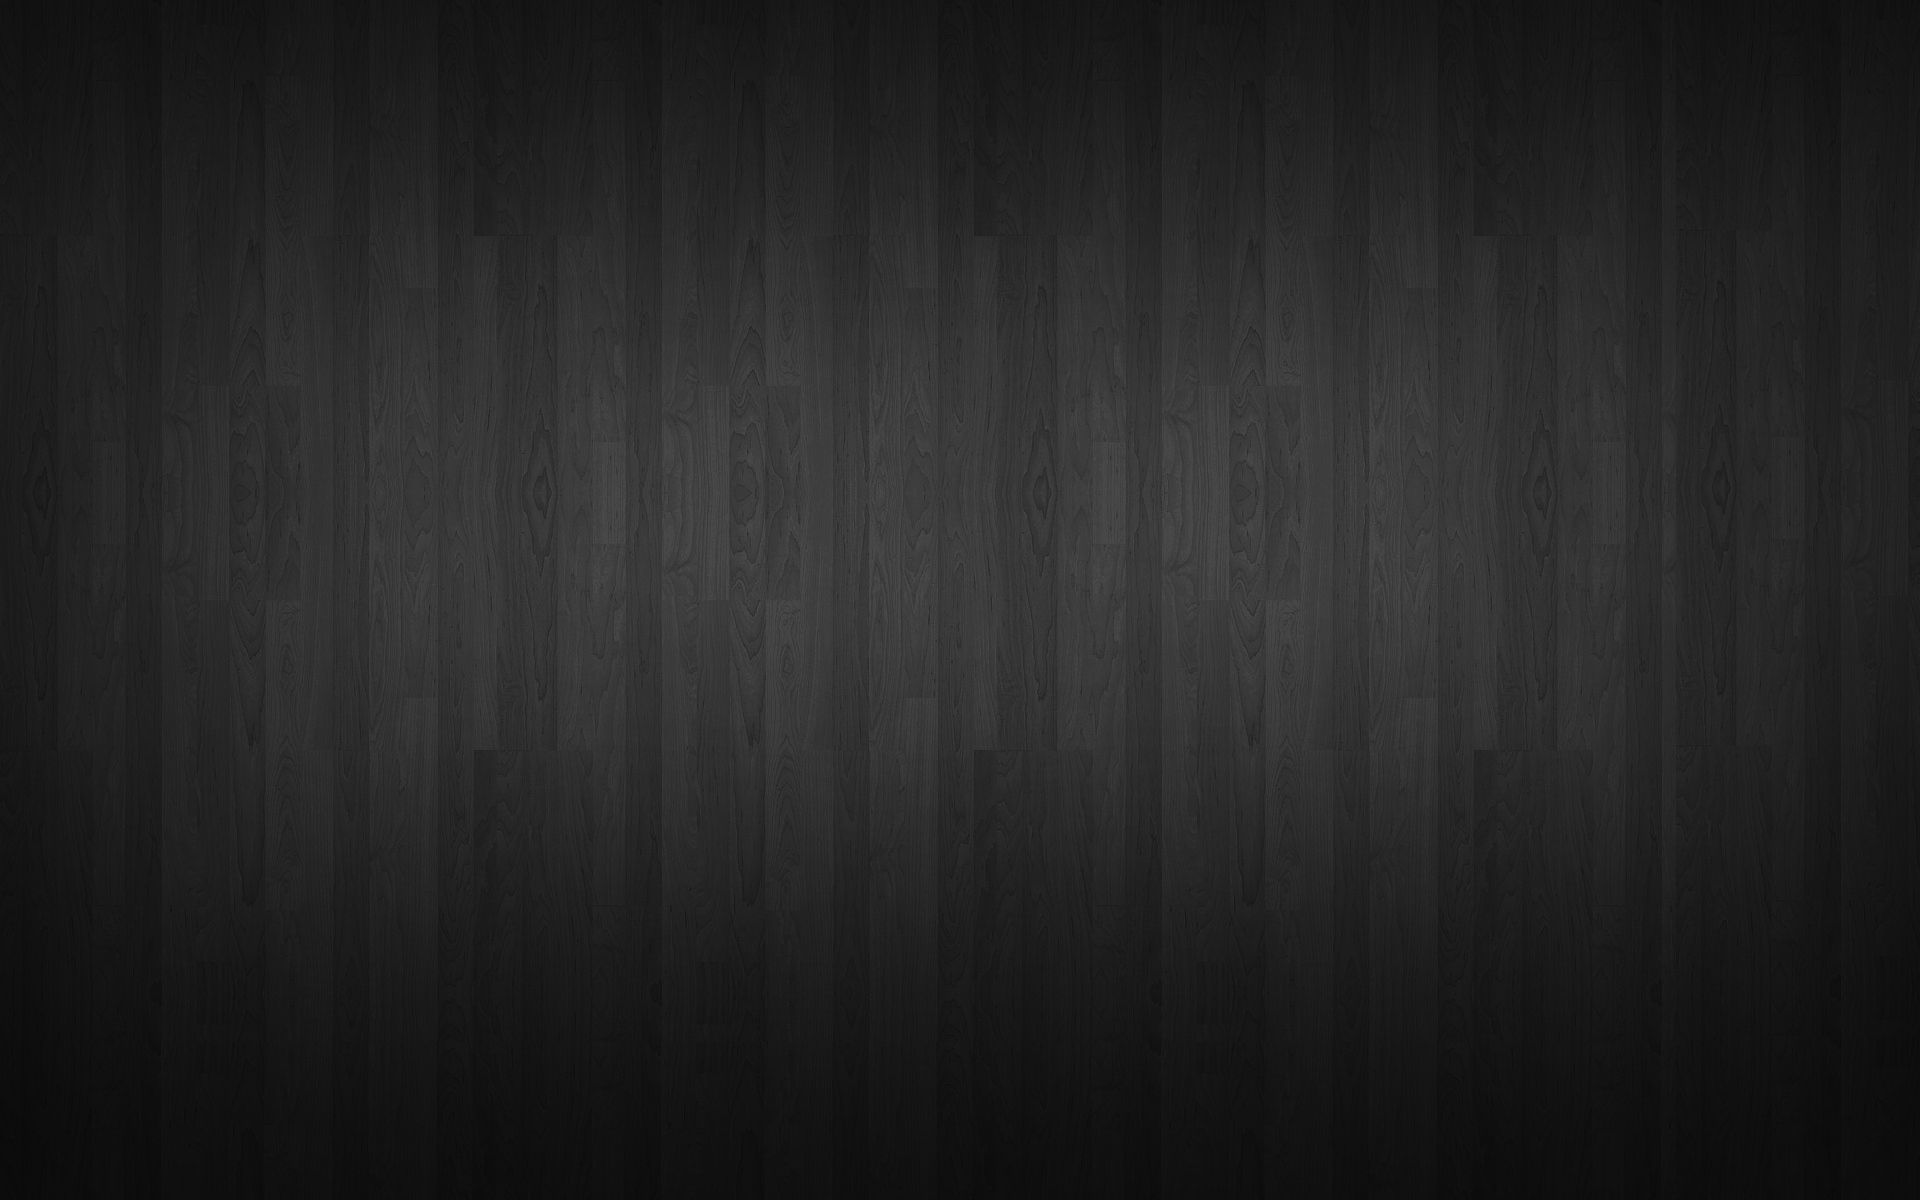 113013 download wallpaper Textures, Texture, Background, Bw, Chb, Wood, Wooden, Surface, Planks, Board screensavers and pictures for free